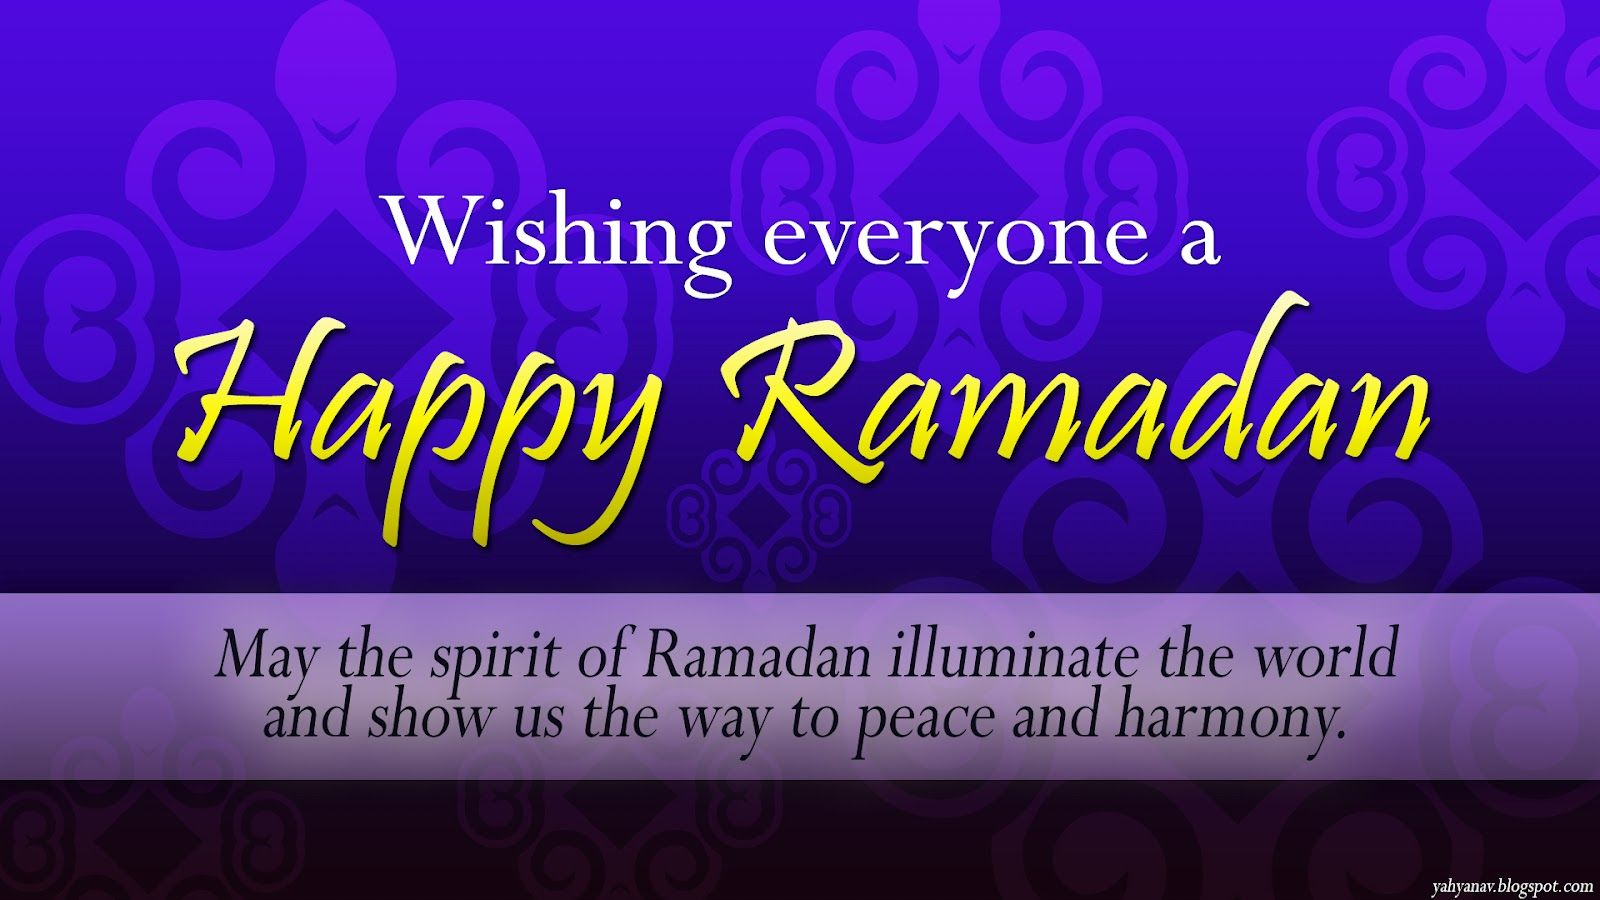 Happy Ramadan Kareem 2013 Pictures HD Wallpaper!!! | ramadan 2015 ... for Happy Ramadan Wallpaper  181plt